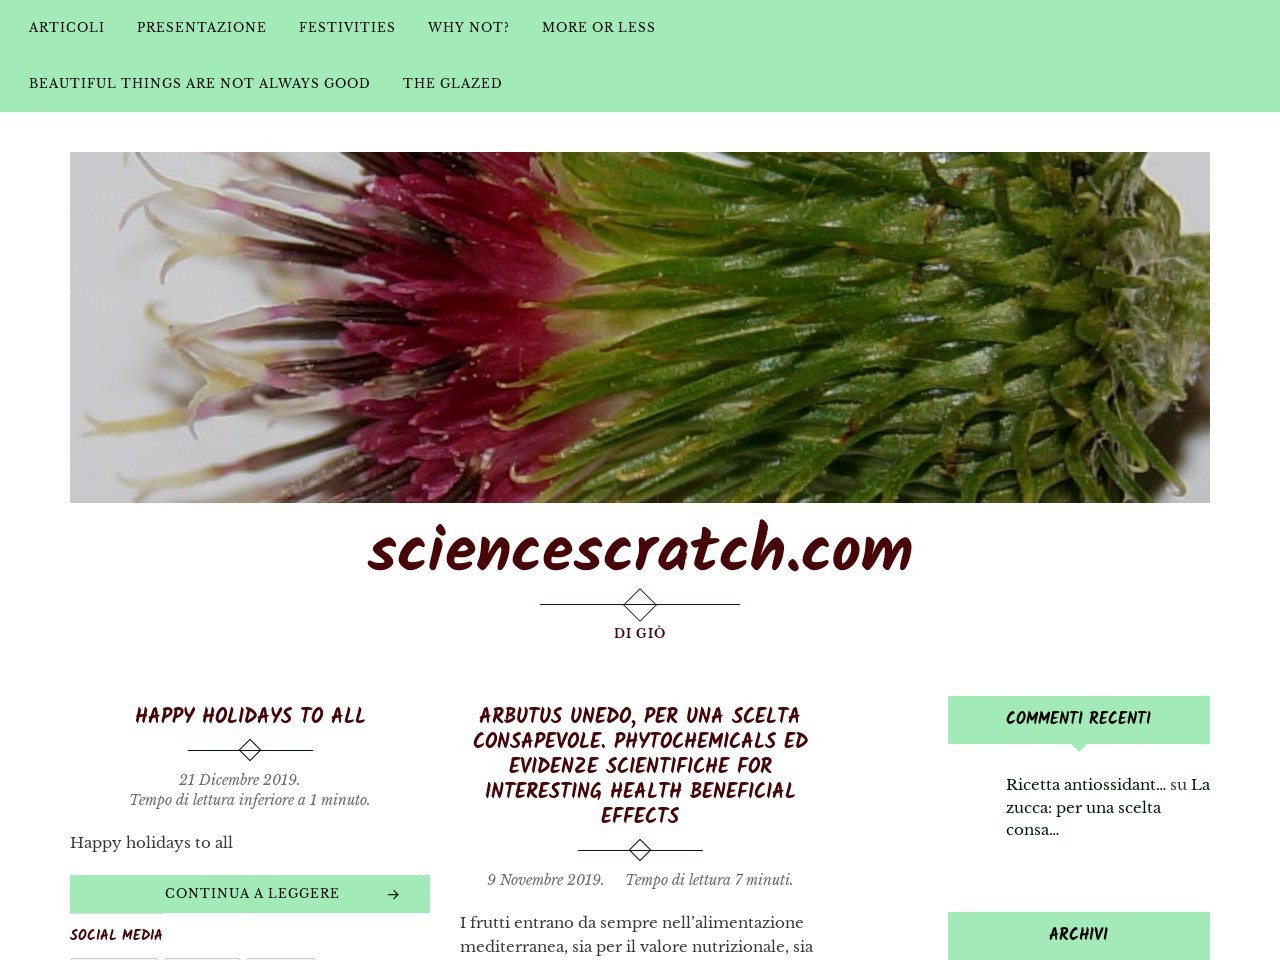 sciencescratch-com